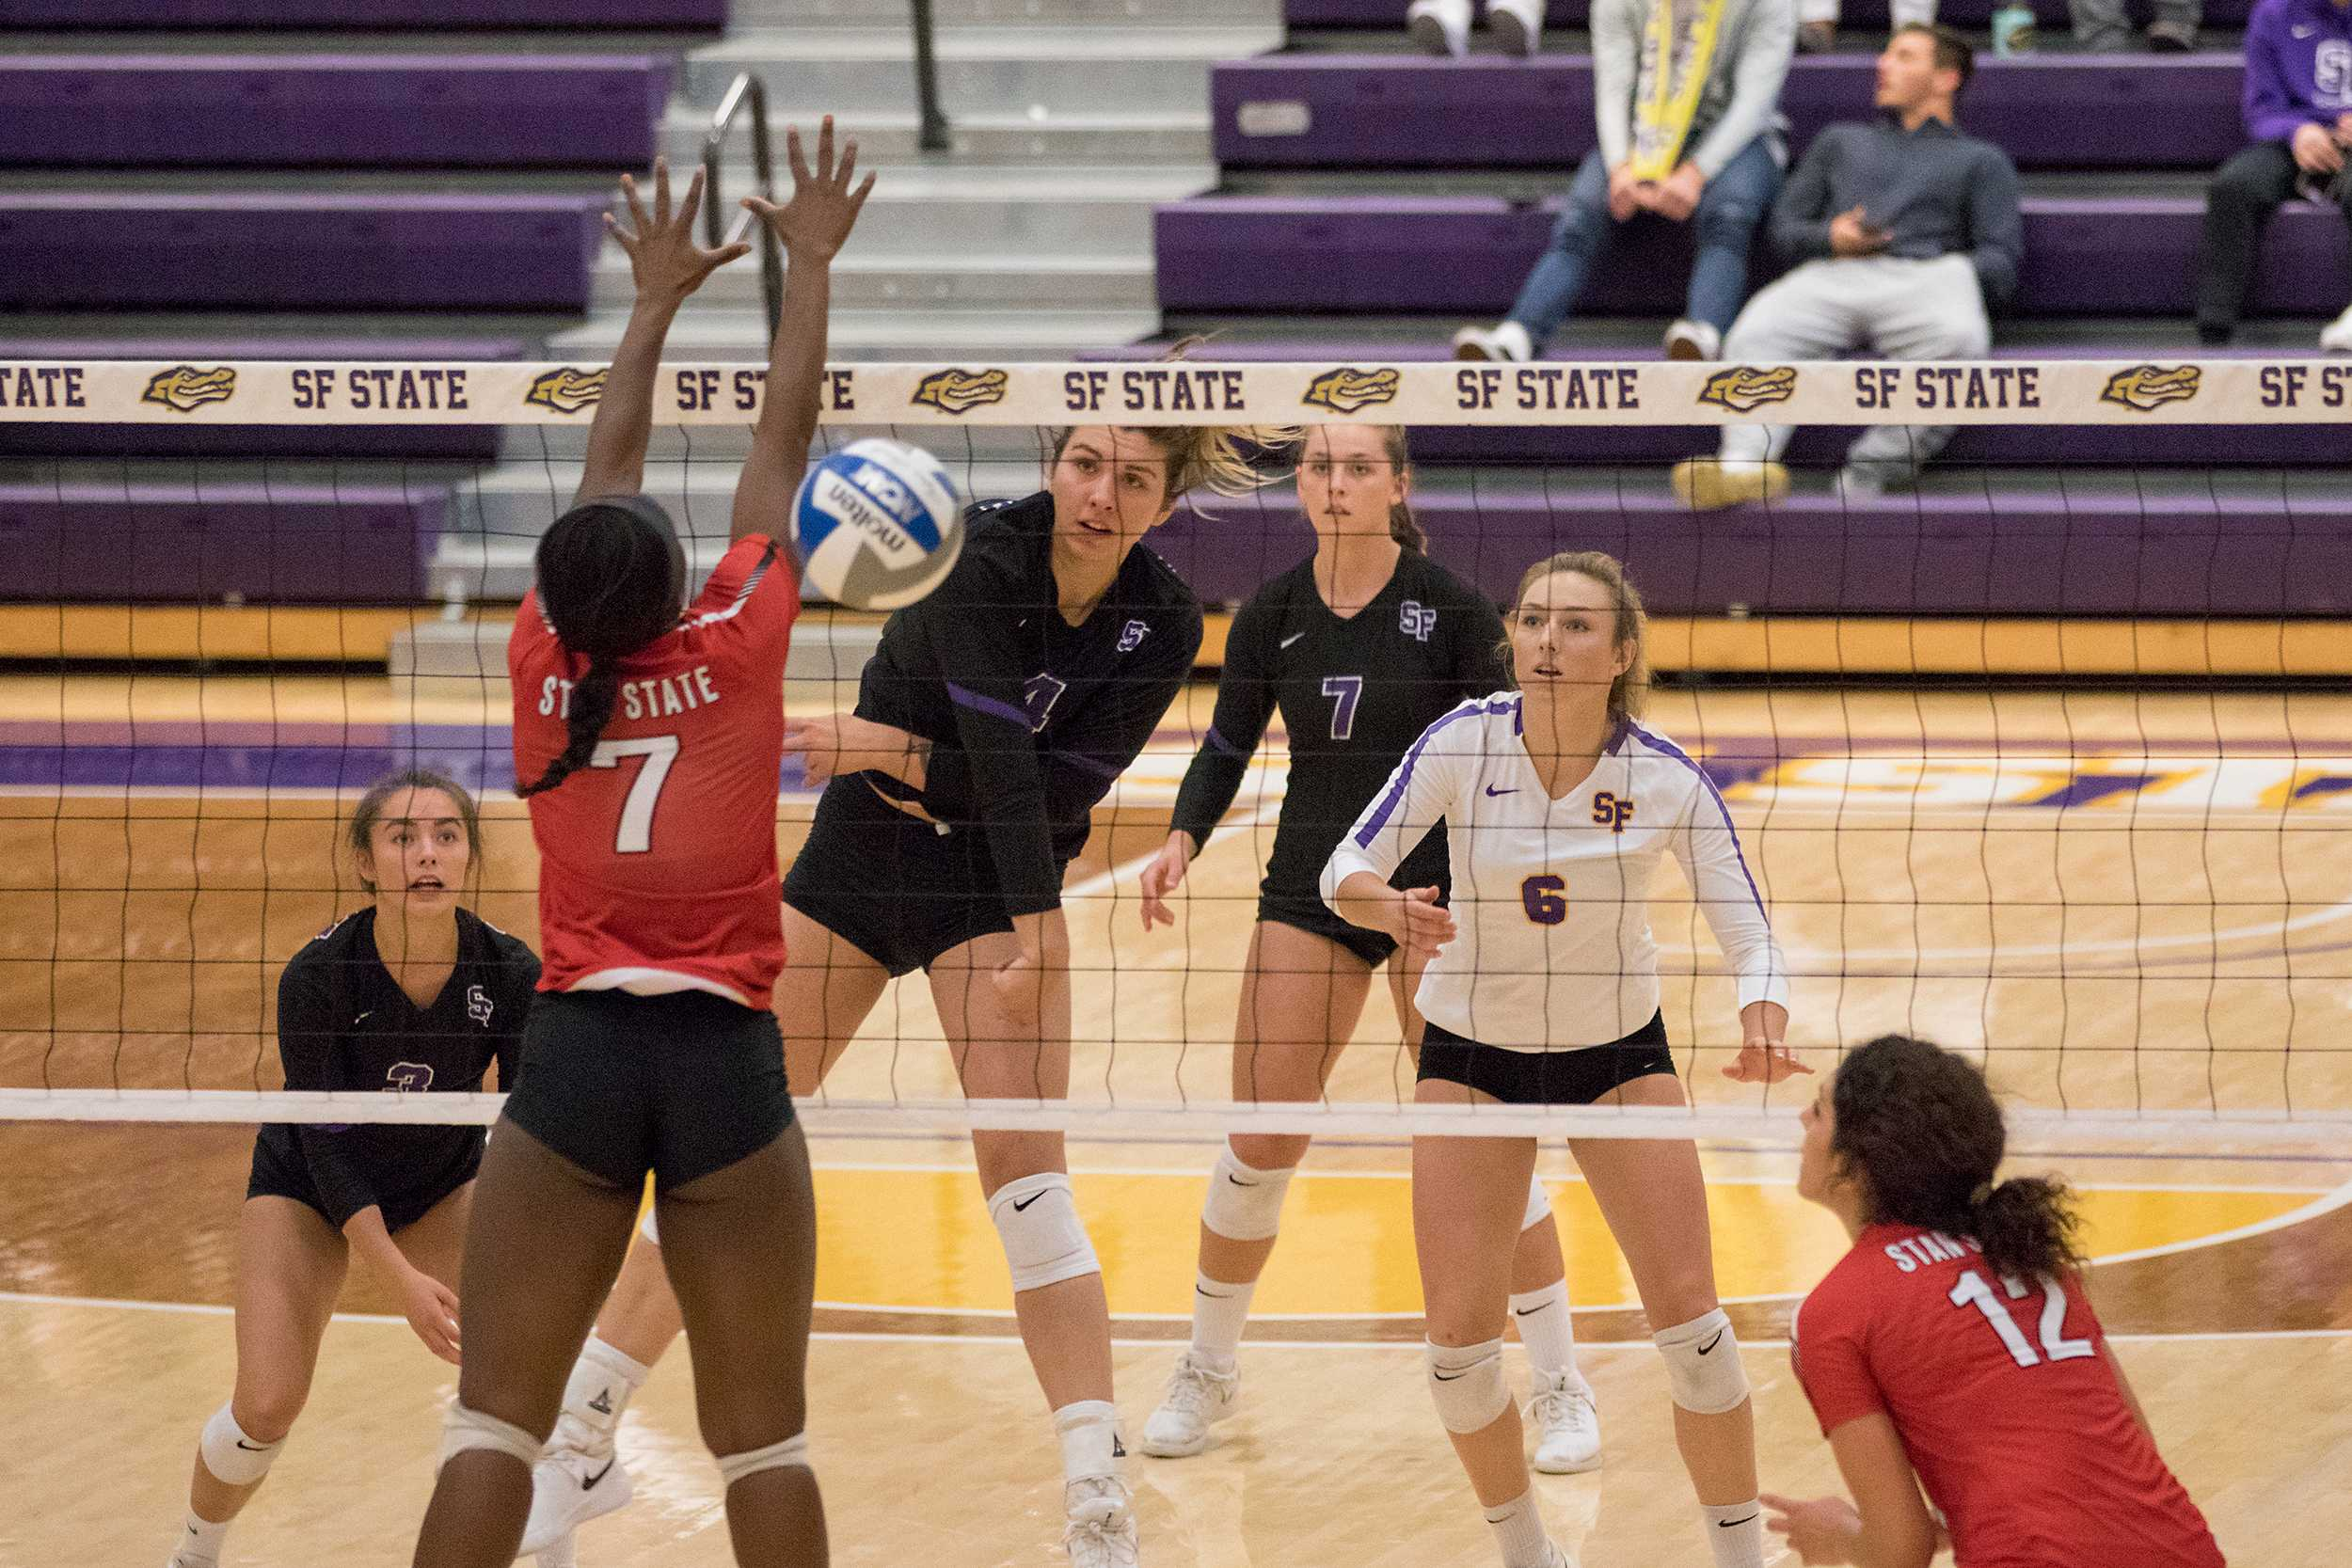 SF State wins first in five against Stanislaus State 3-1, climbs CCAA playoff ladder.